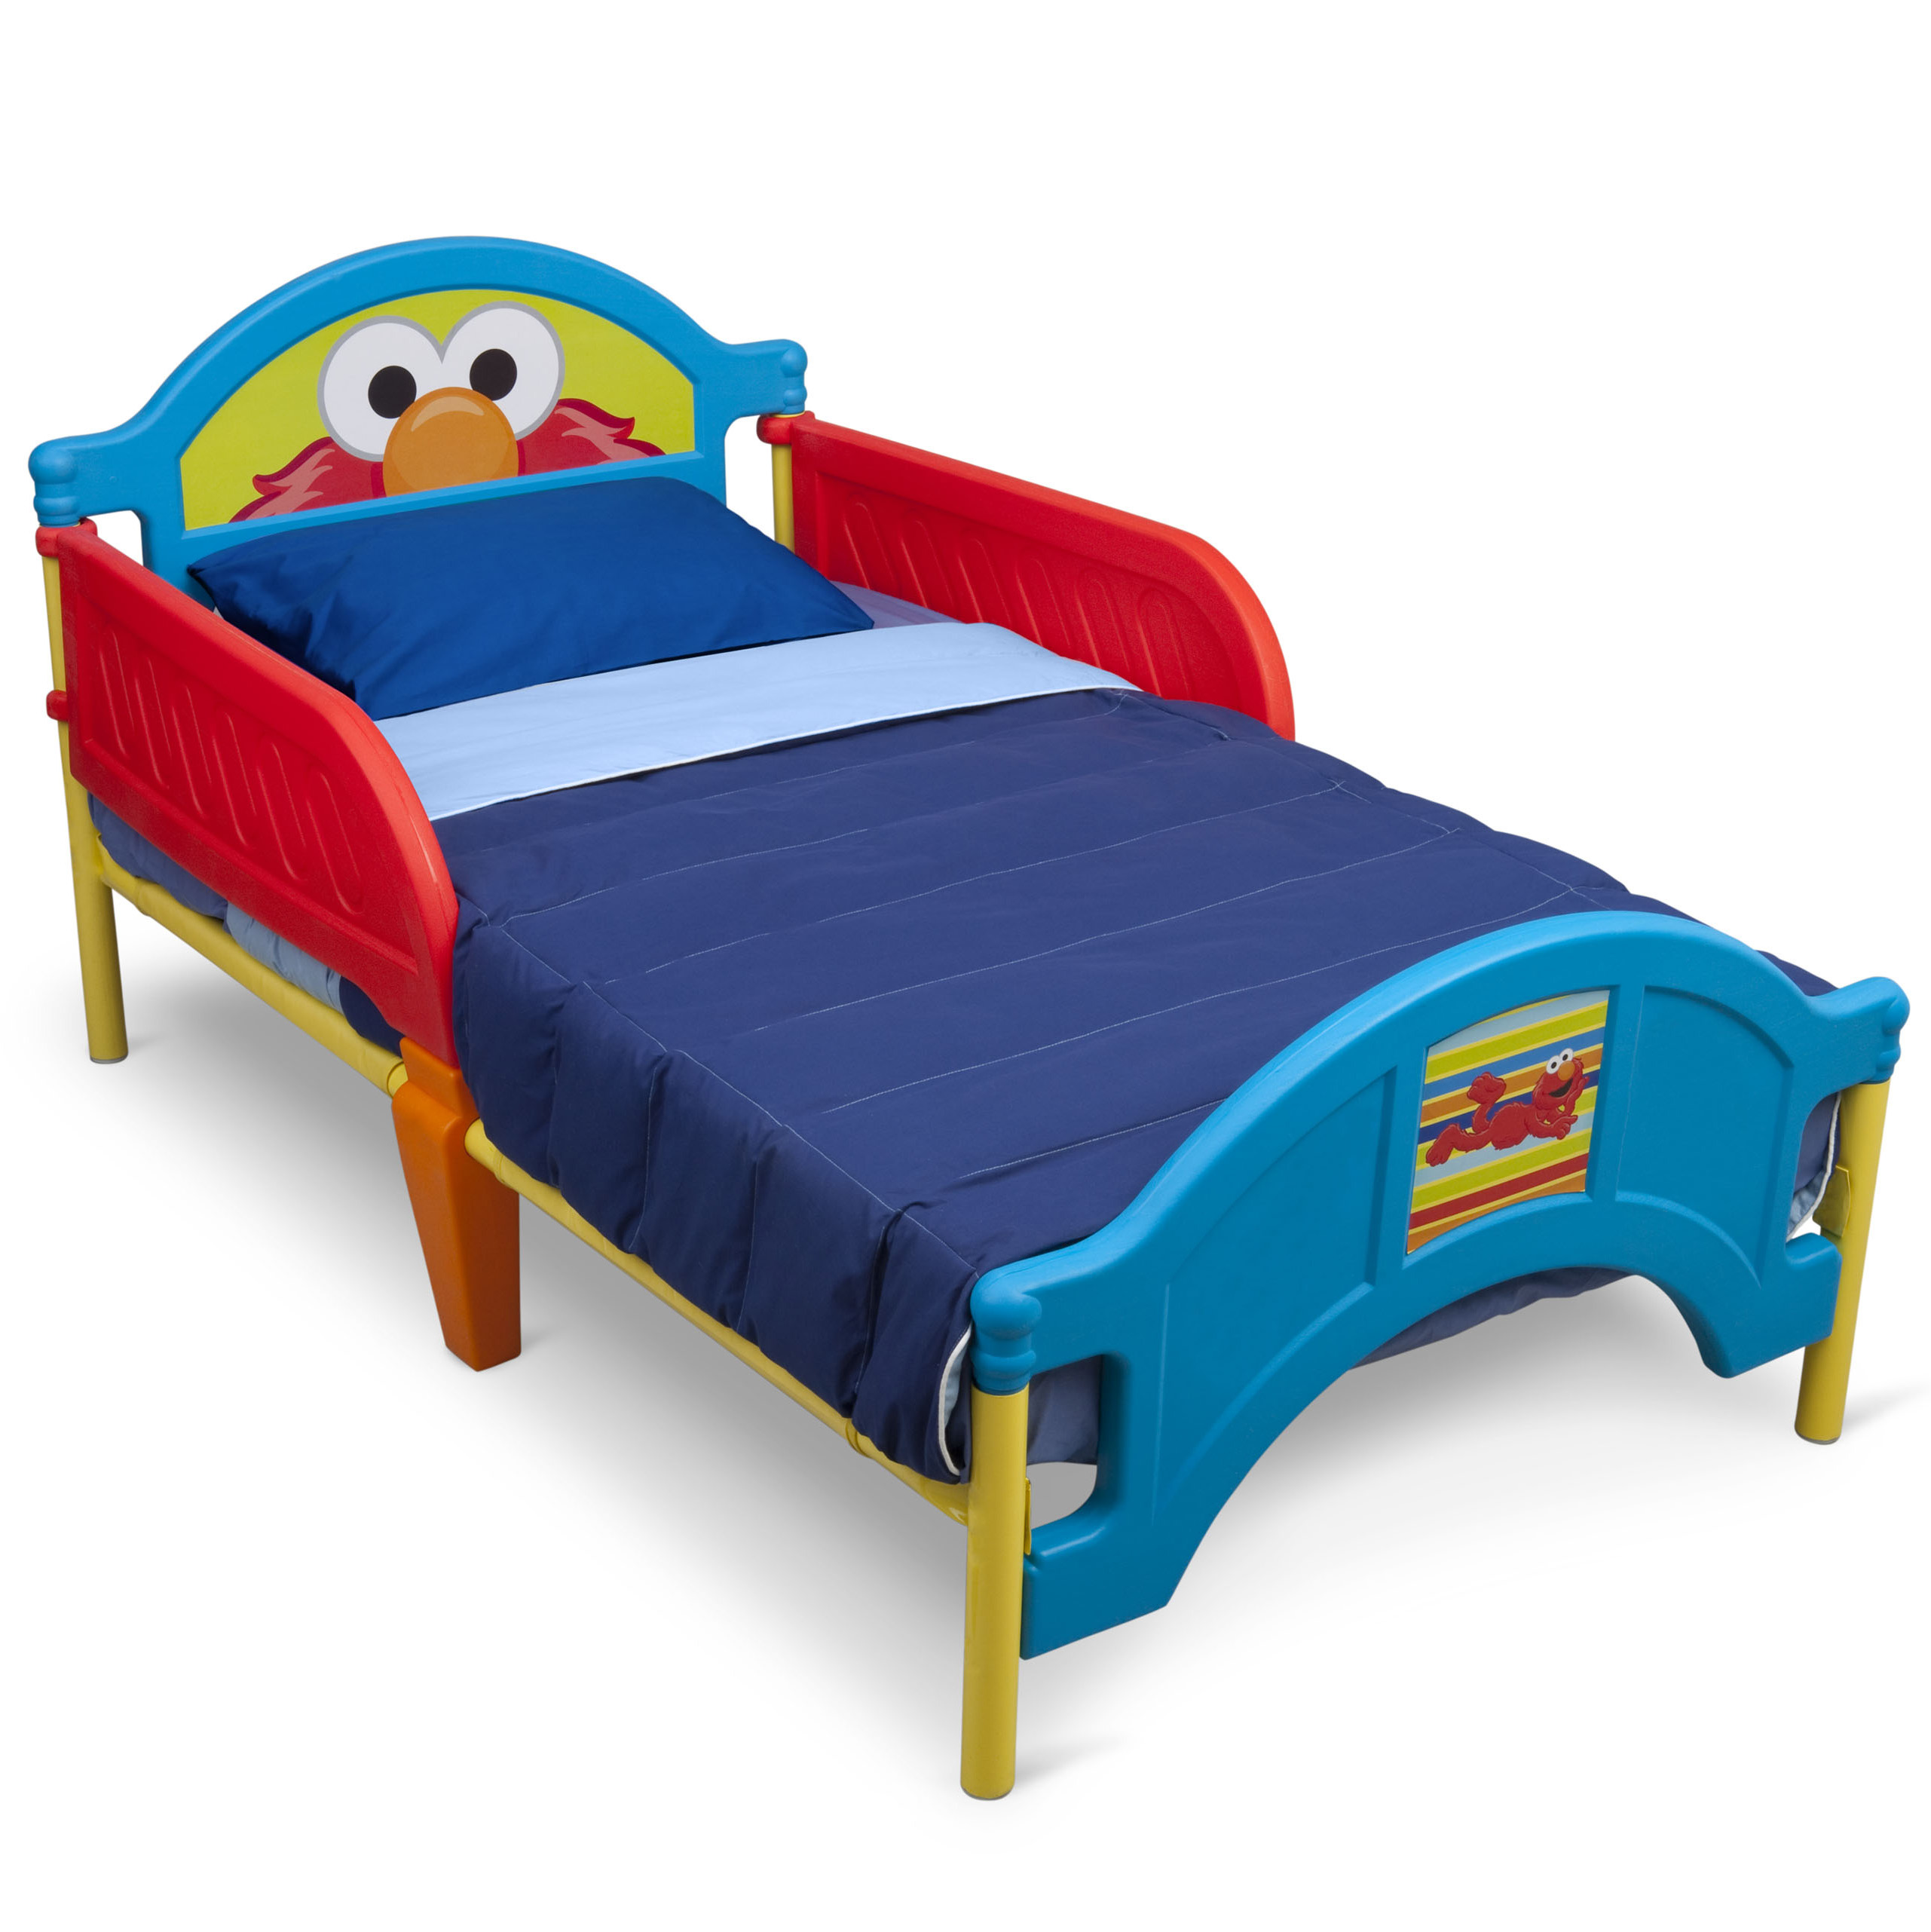 Delta Children Sesame Street Elmo Plastic Toddler Bed, Red and Blue